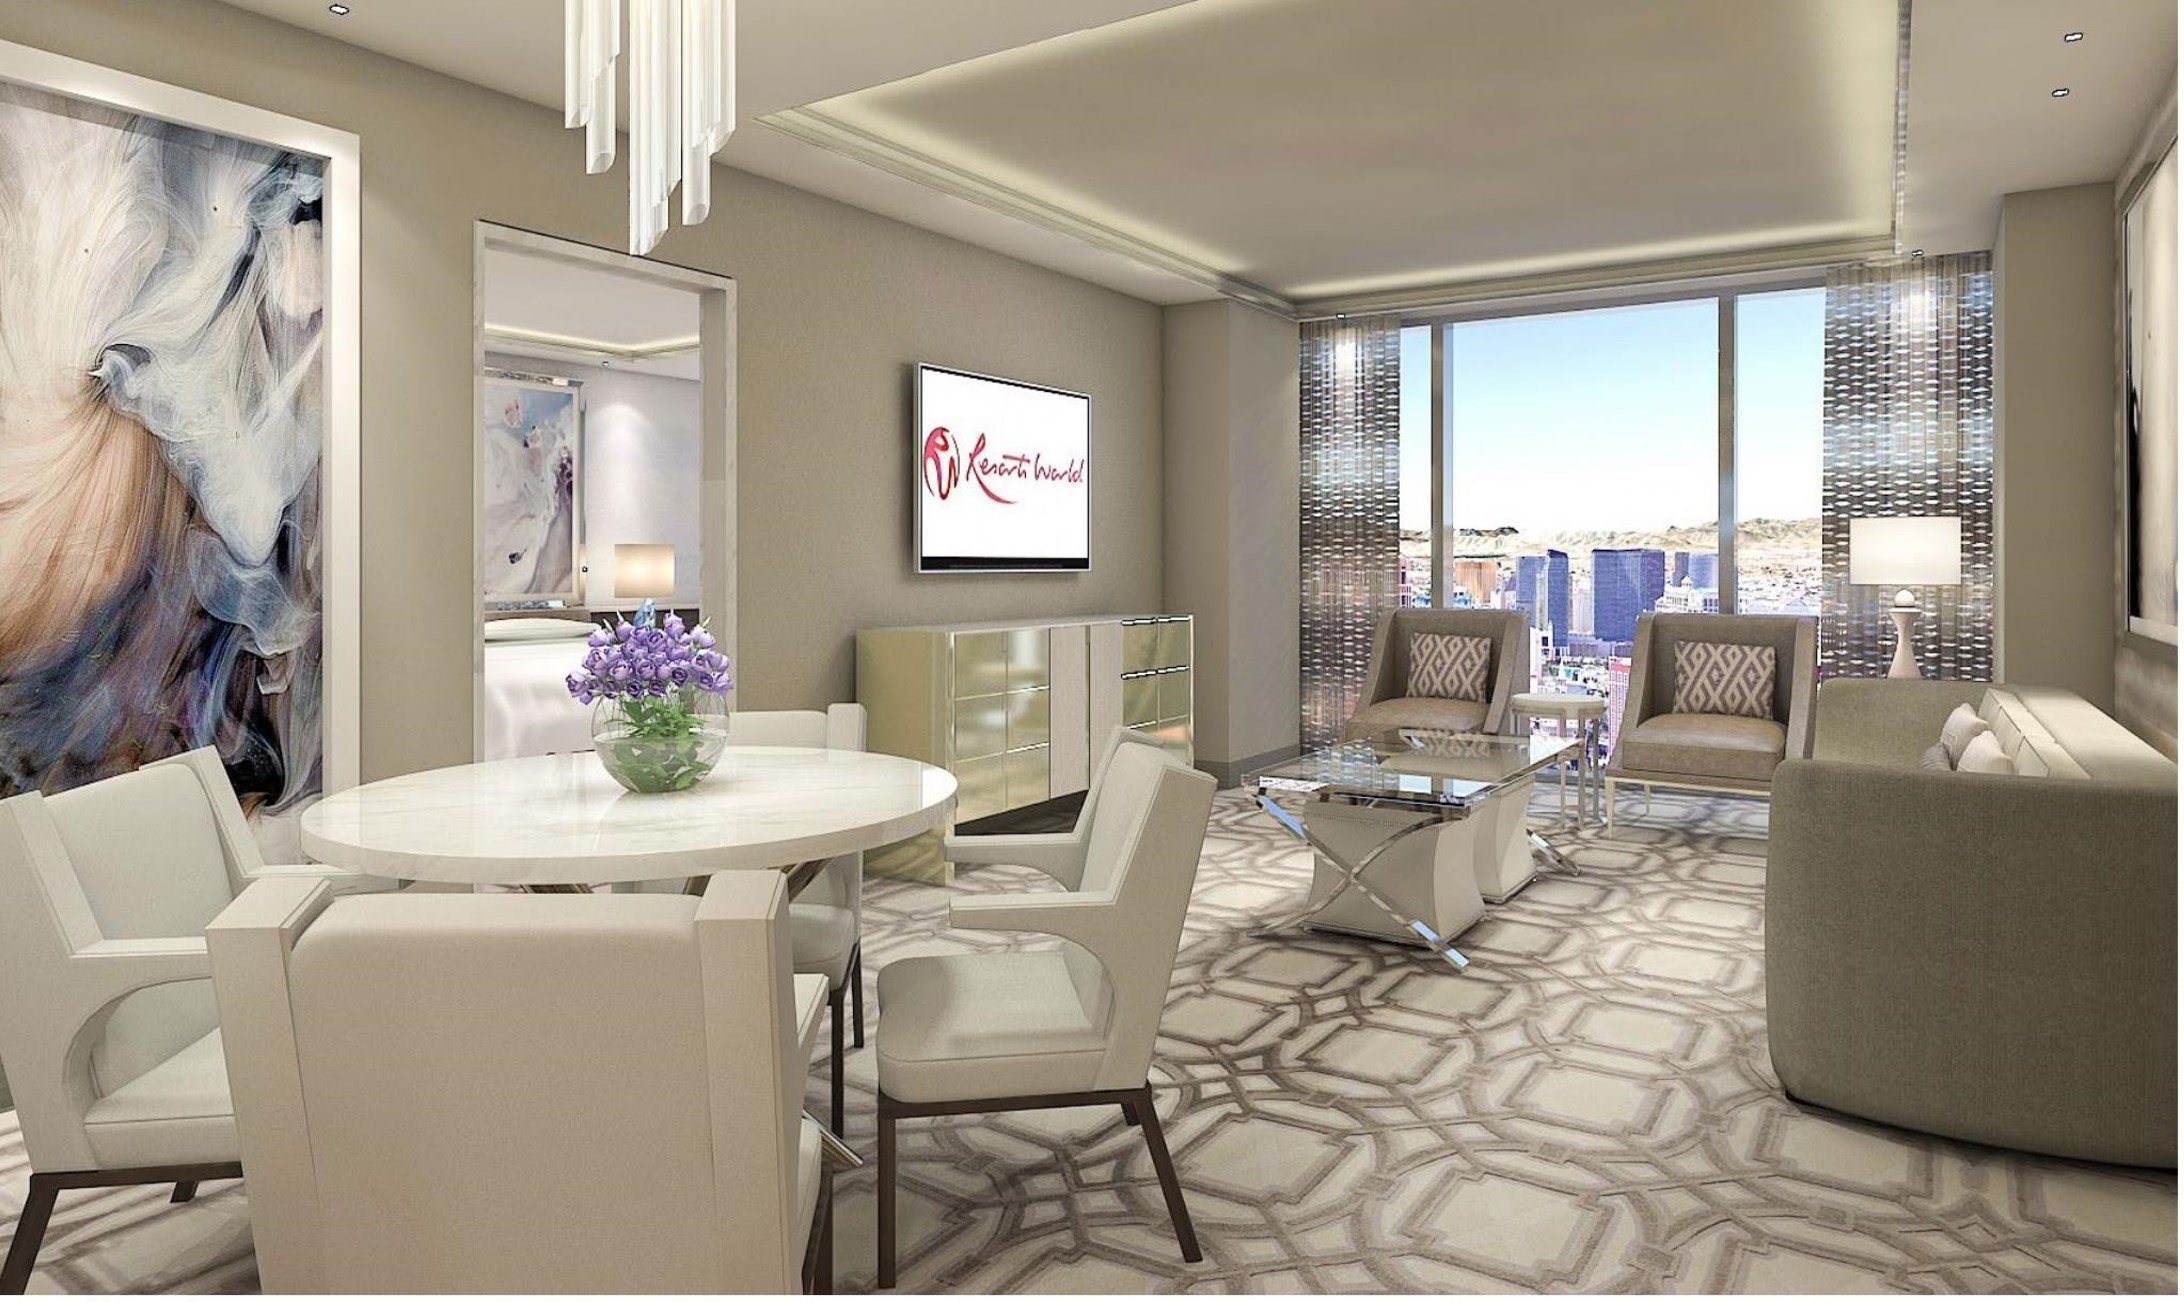 Crockfords: City View One Bedroom Suite - One King Bed